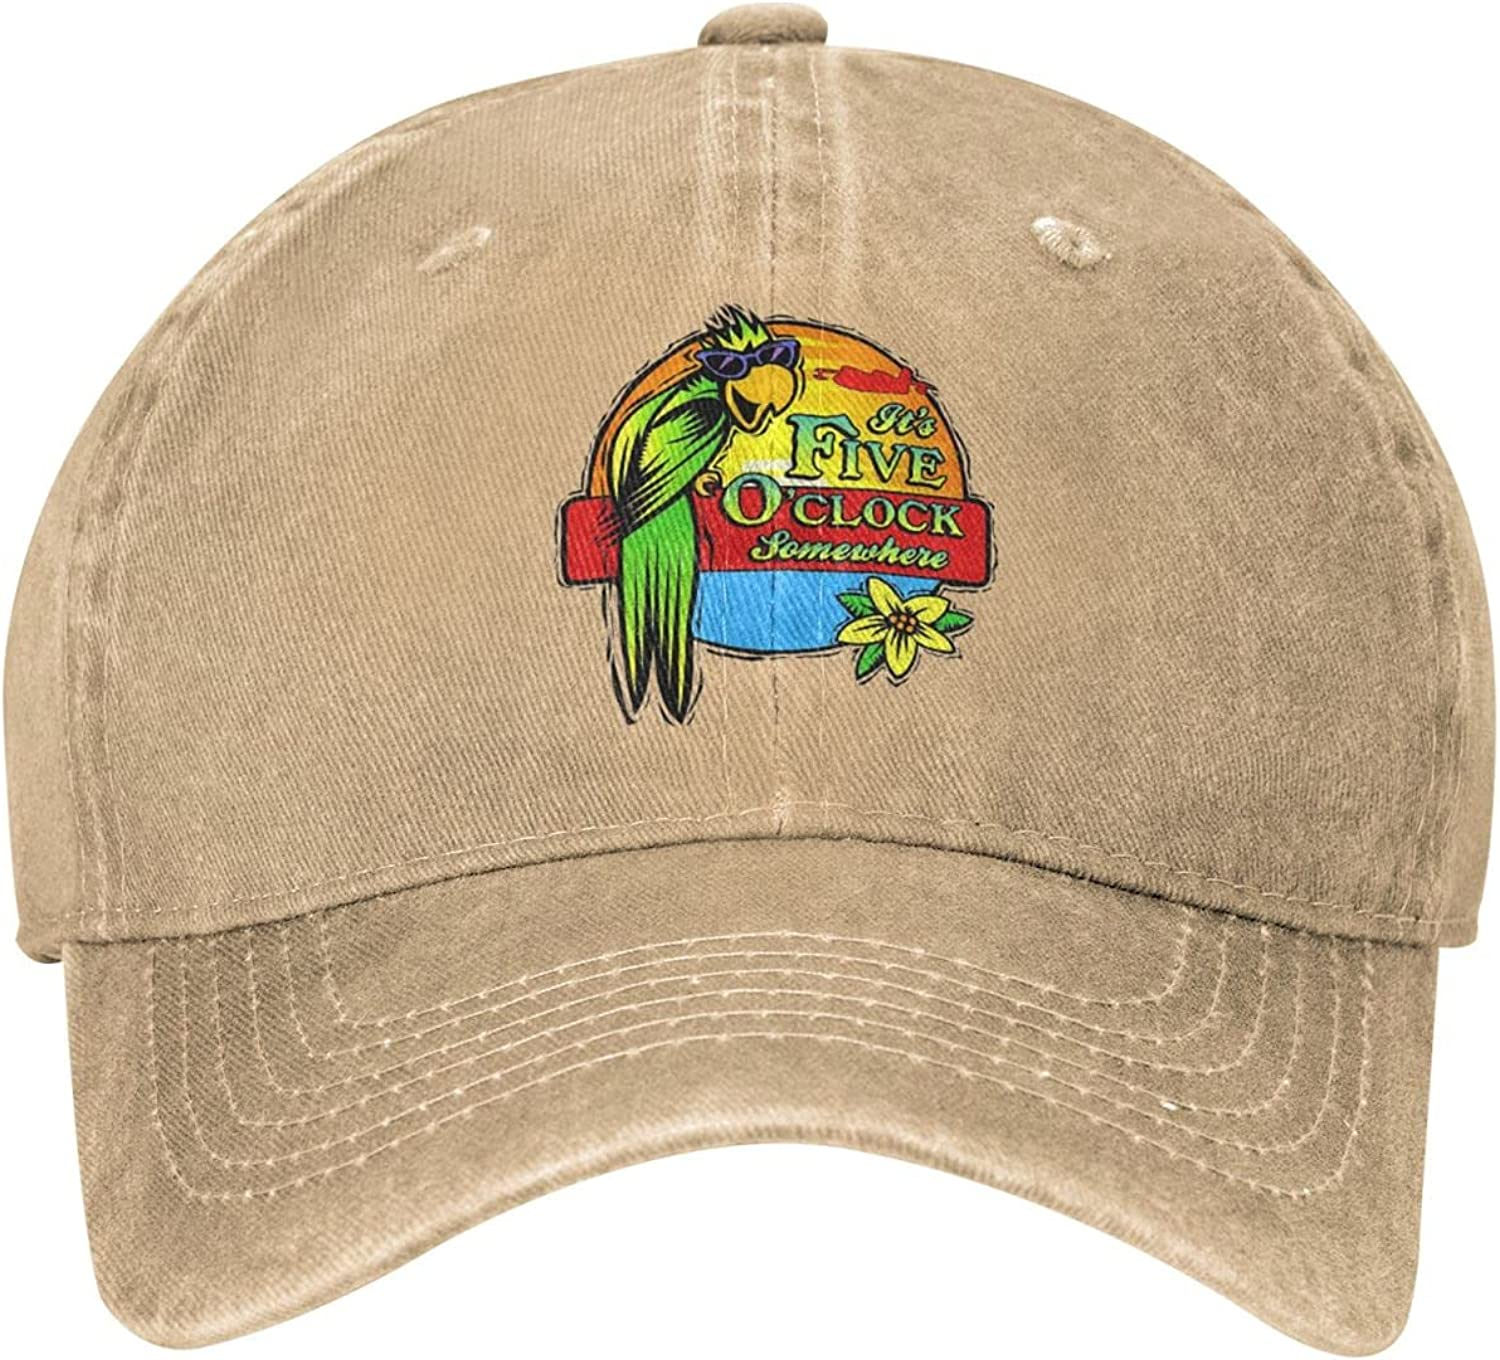 Jimmy Buffet It's Five O'Clock Somewhere Sun Hat Dad Hat Baseball Cap Cotton Adjustable Fitted for Women Men